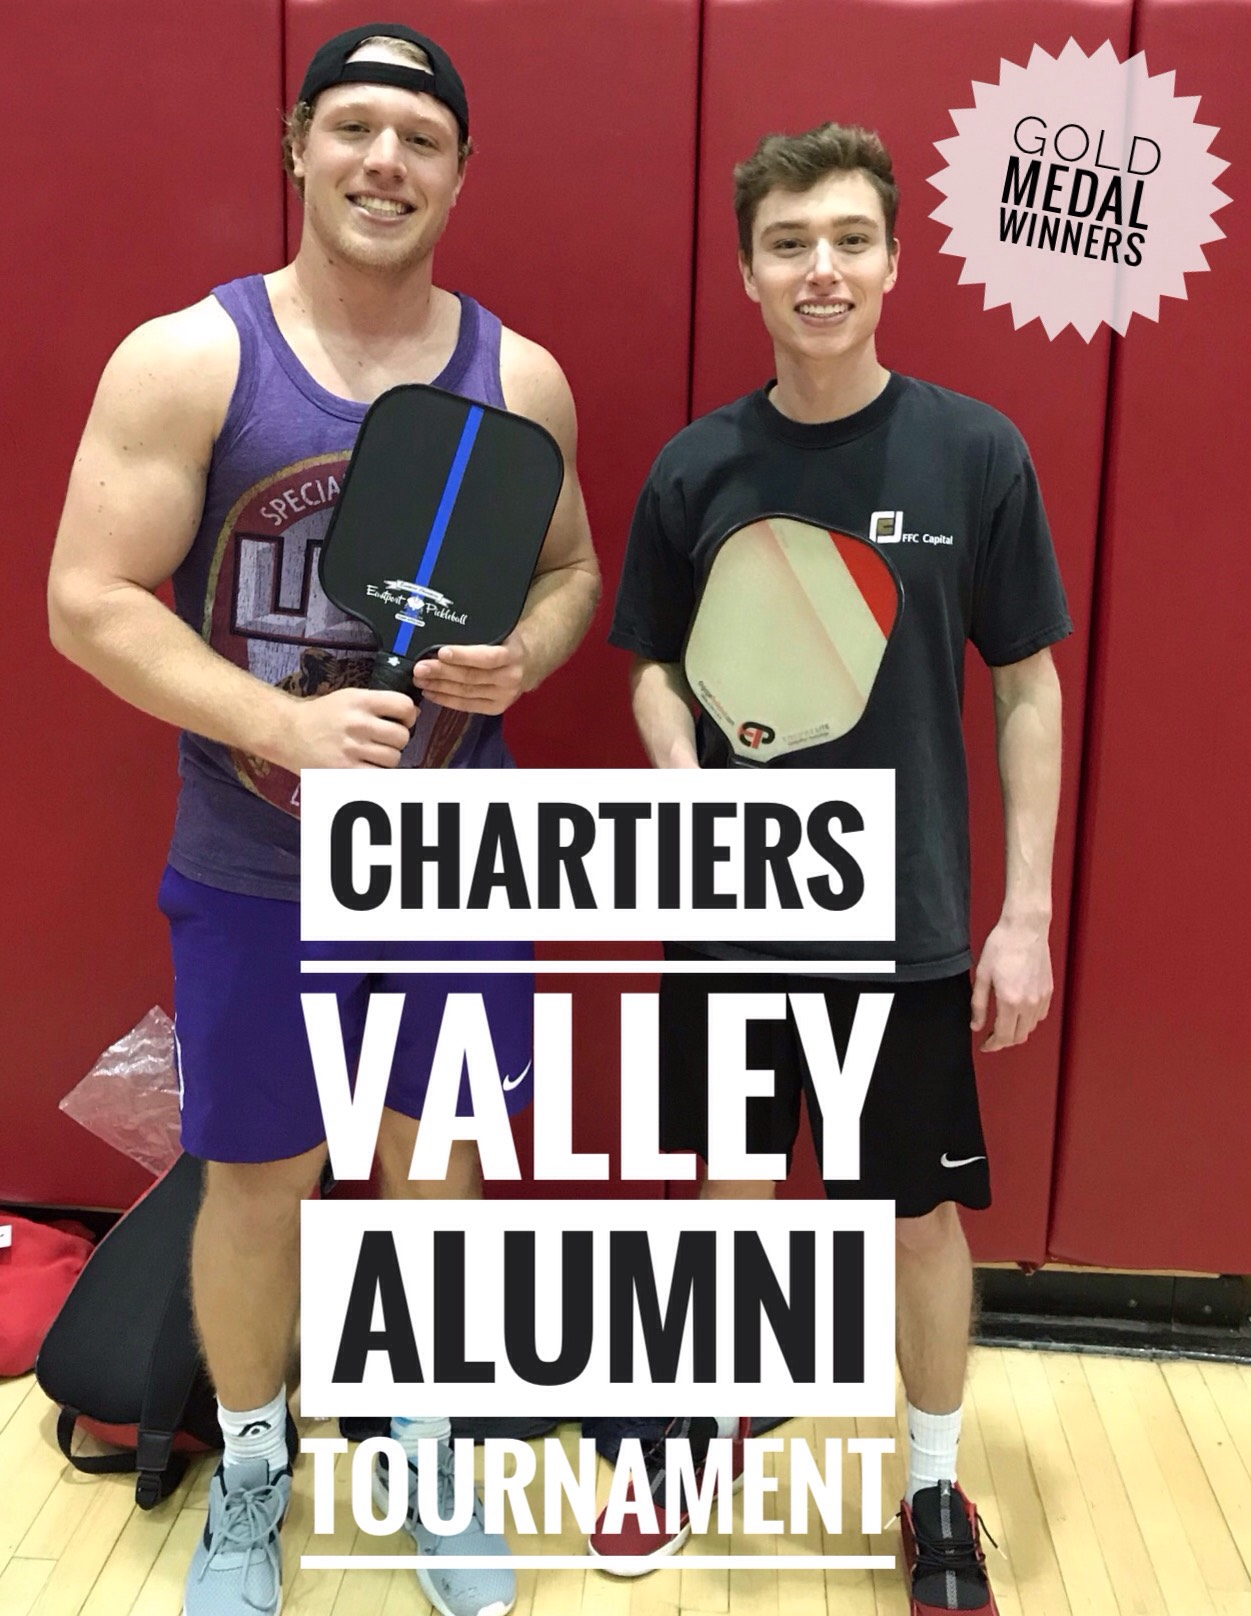 - CONGRATS KYLE …. IT MUST HAVE BEEN FUN PLAYING WITH OLD FRIENDS.DECEMBER 22, 2018